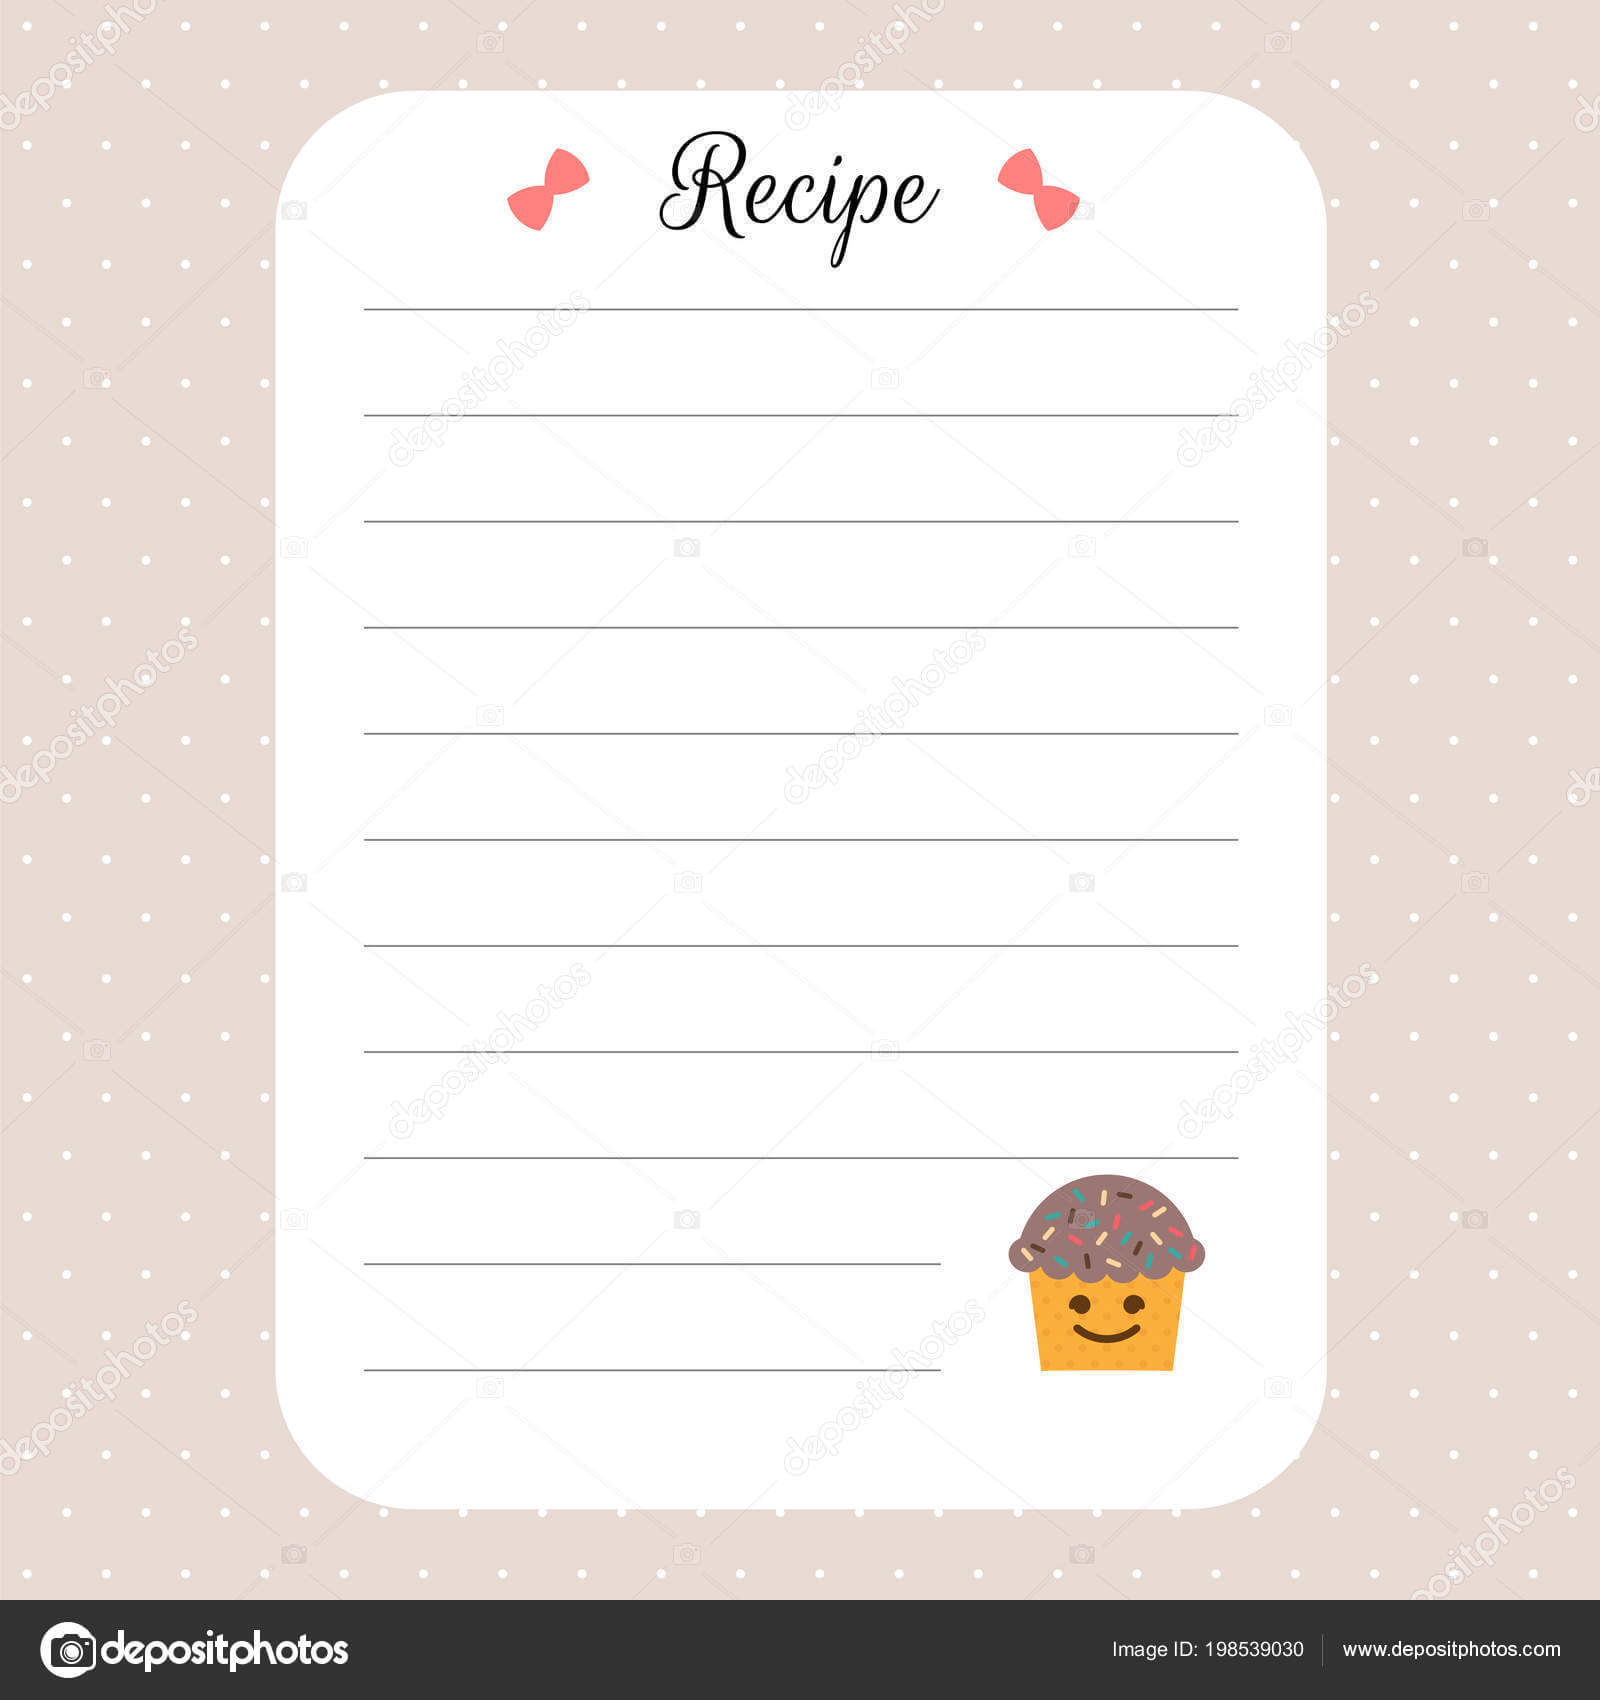 Recipe Card Template Cookbook Template Page Restaurant Cafe intended for Restaurant Recipe Card Template